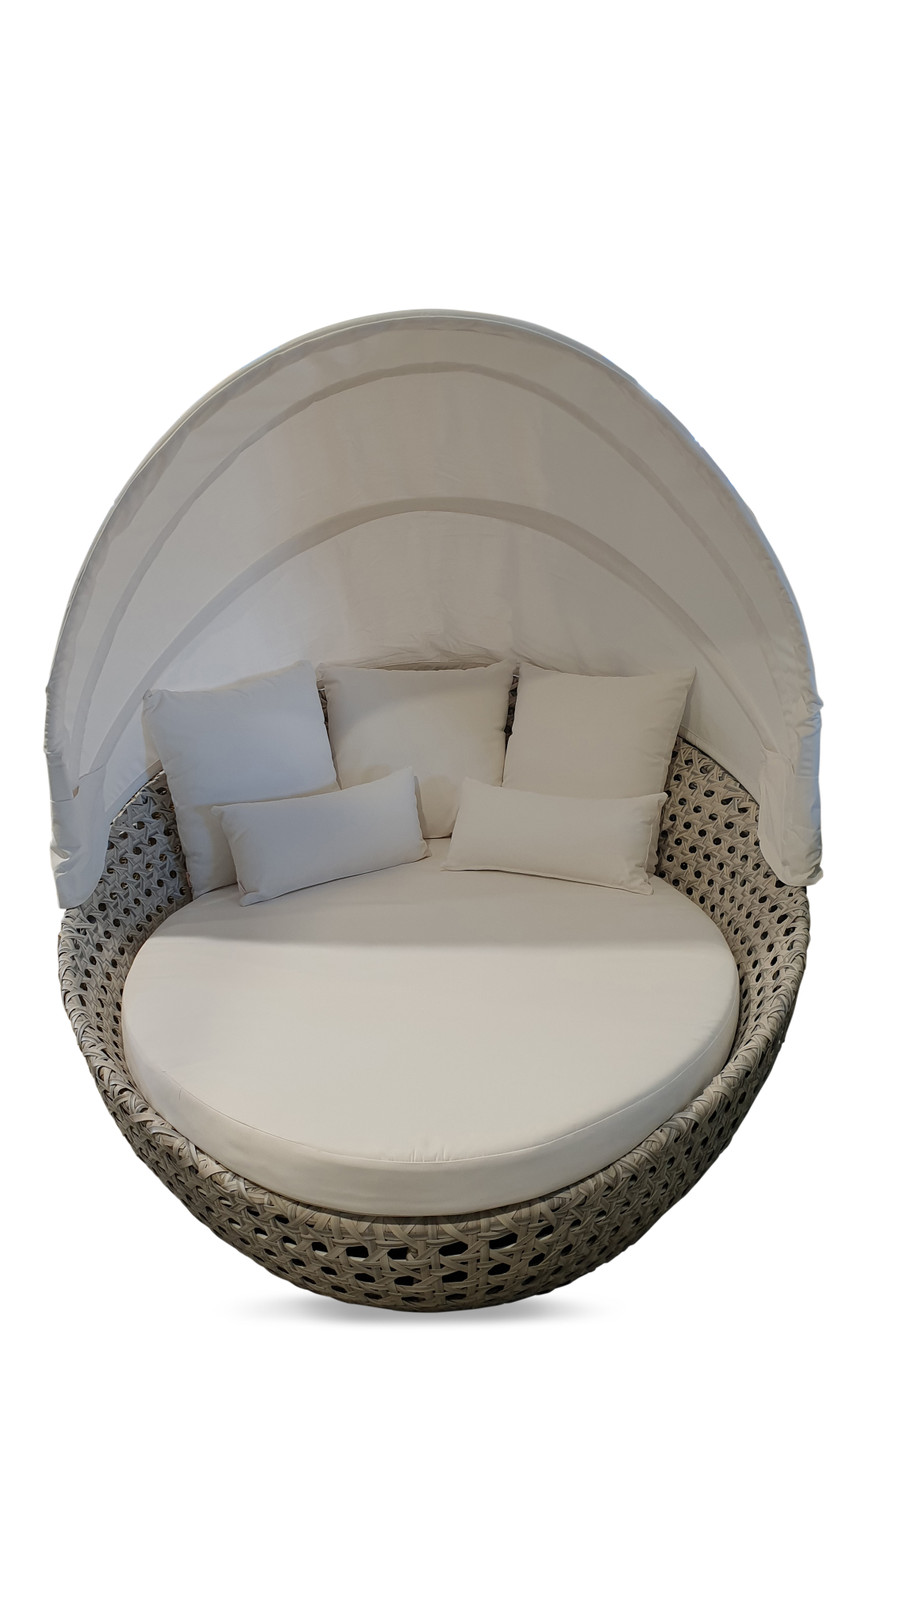 Front view of Lovina outdoor daybed of generous dimensions. Aluminium frame, synthetic wicker and sunbrella fabric.